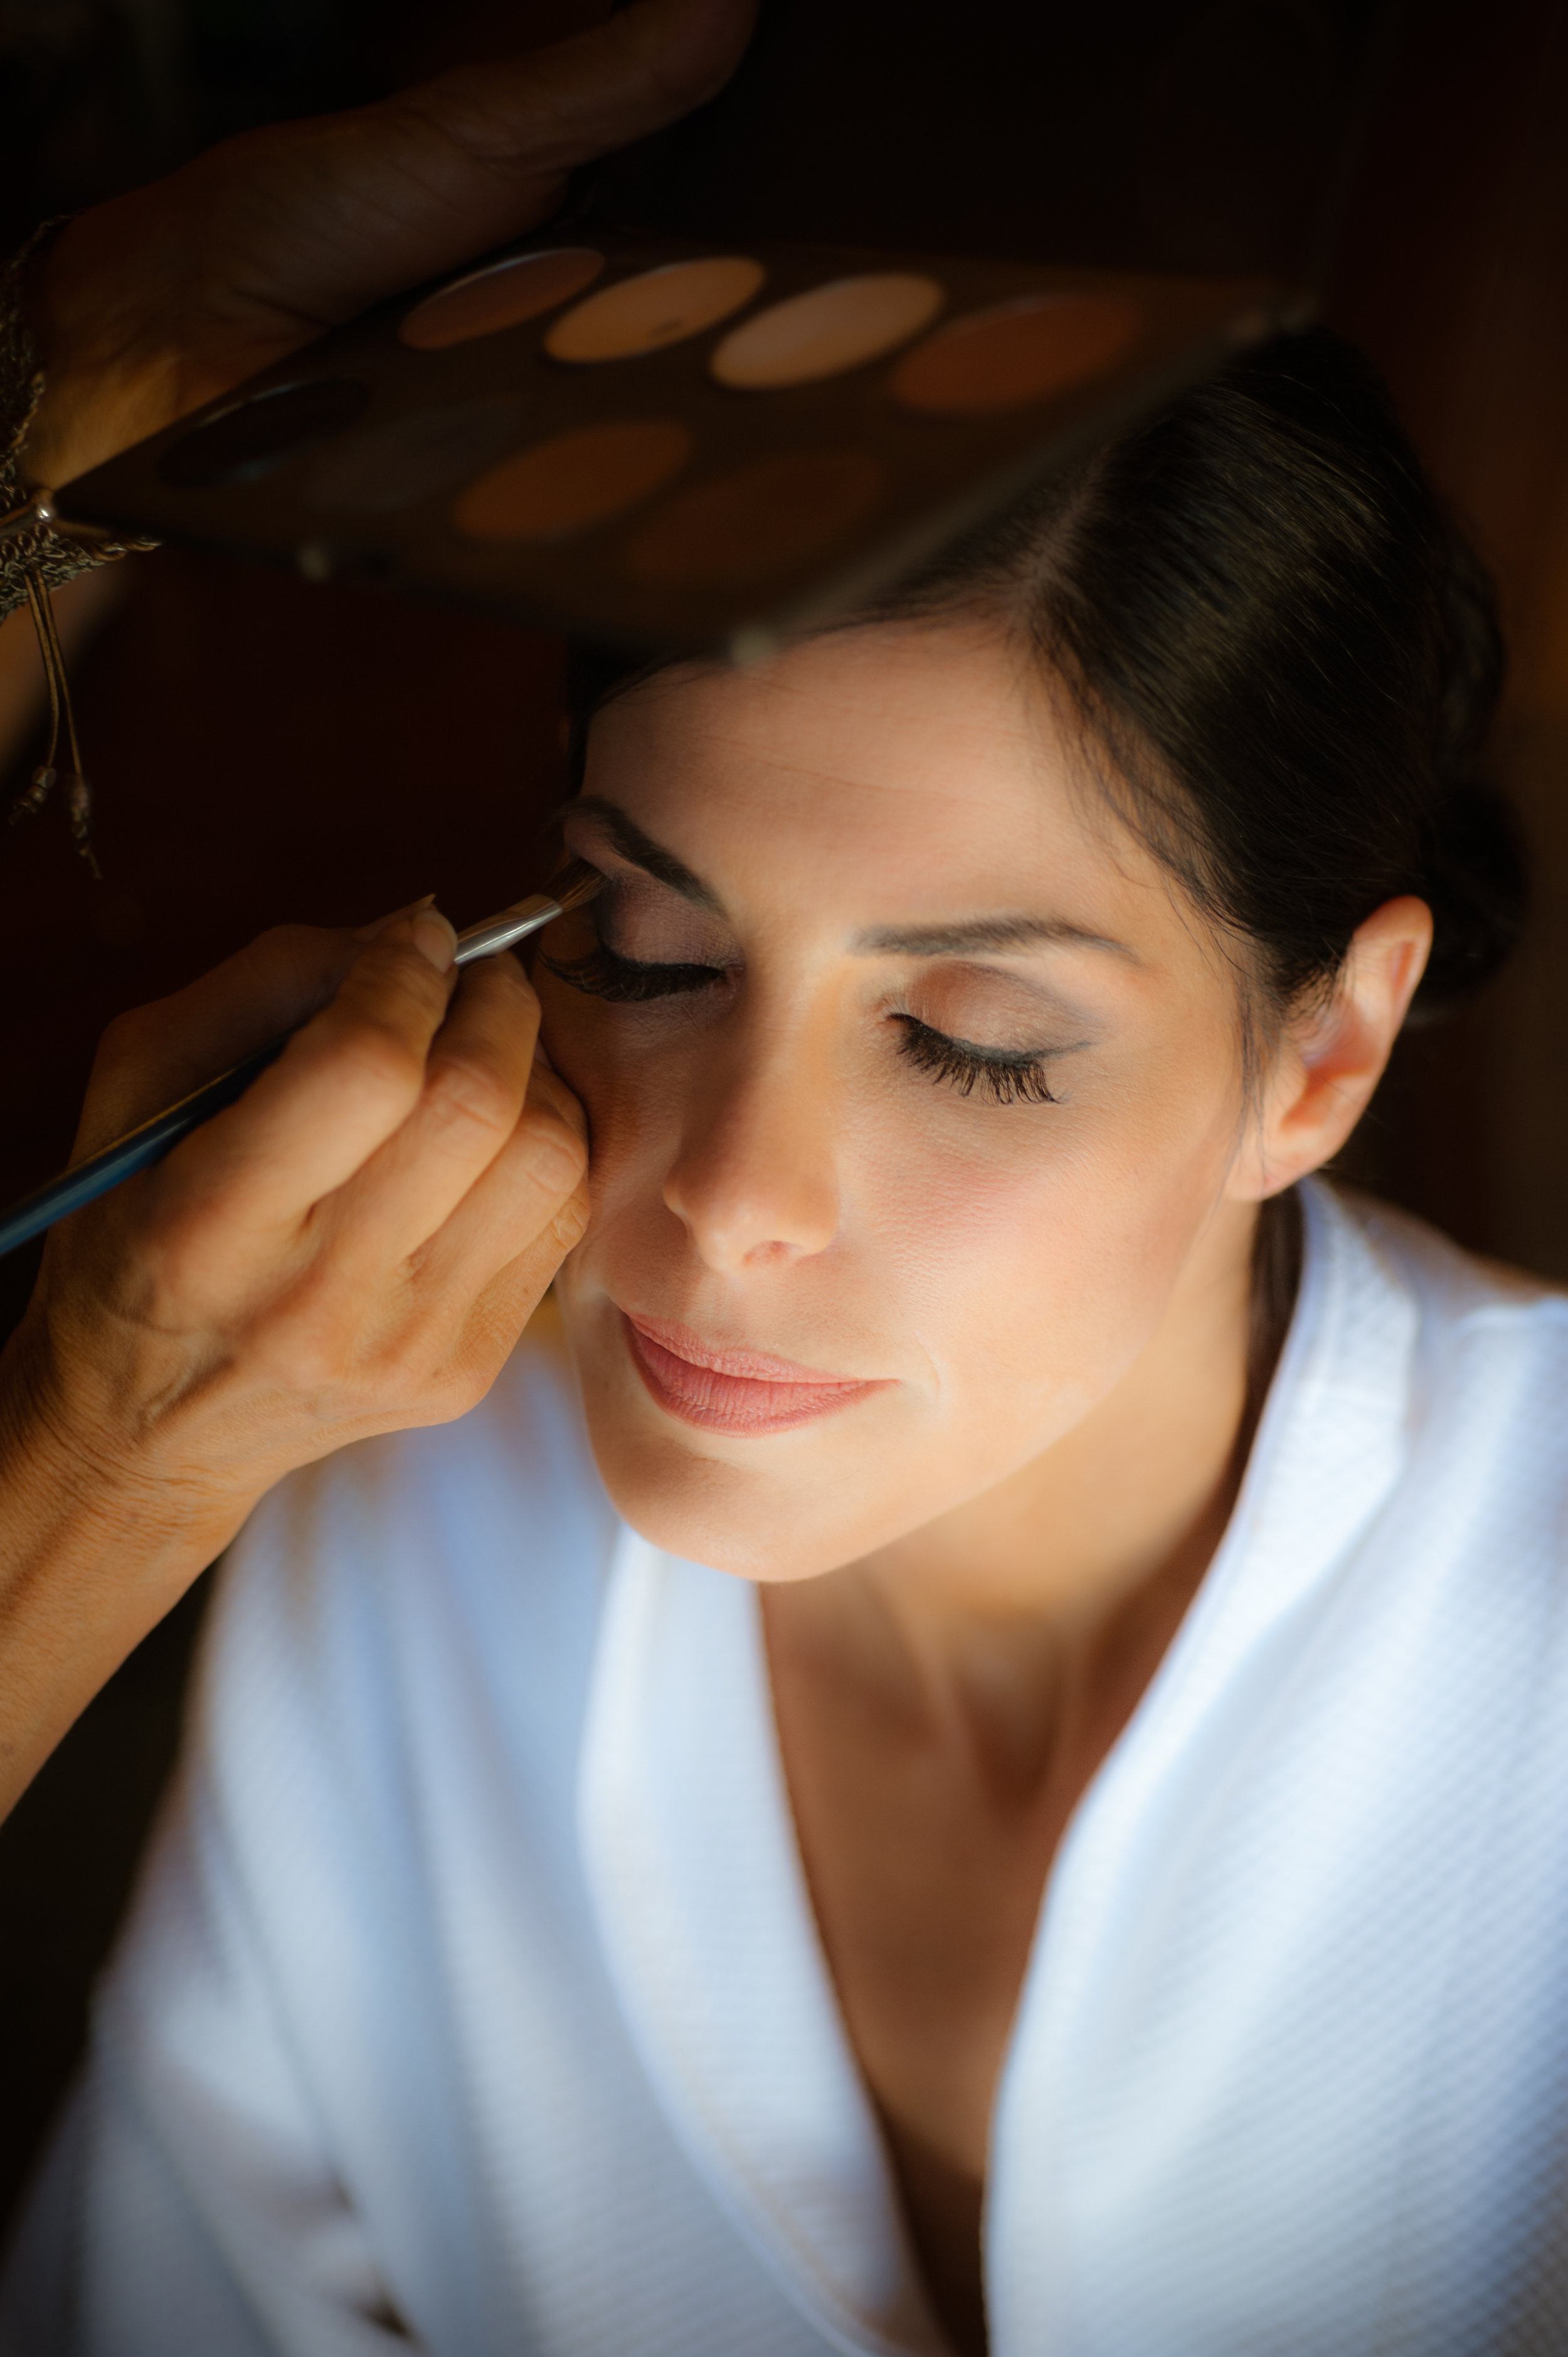 2 bride getting ready bride getting makeup done classic bride getting ready photos Christine Johnson Photography Life Design Events.jpg